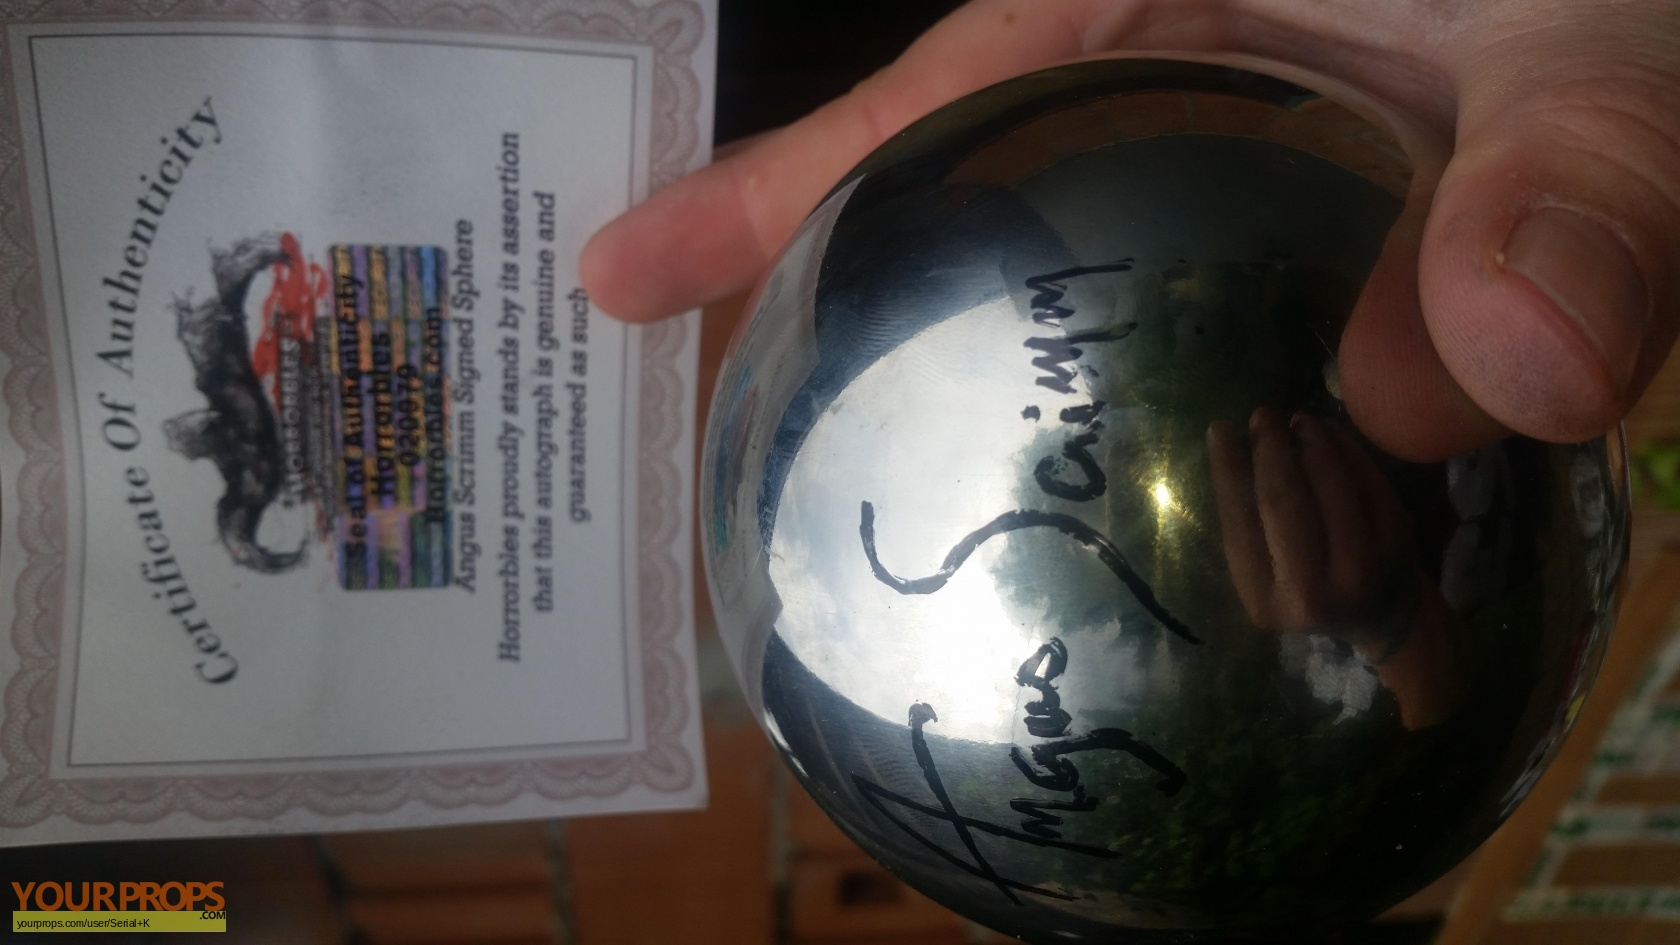 Phantasm Sphere With Signet Of Angus Scrimm Replica Movie Prop